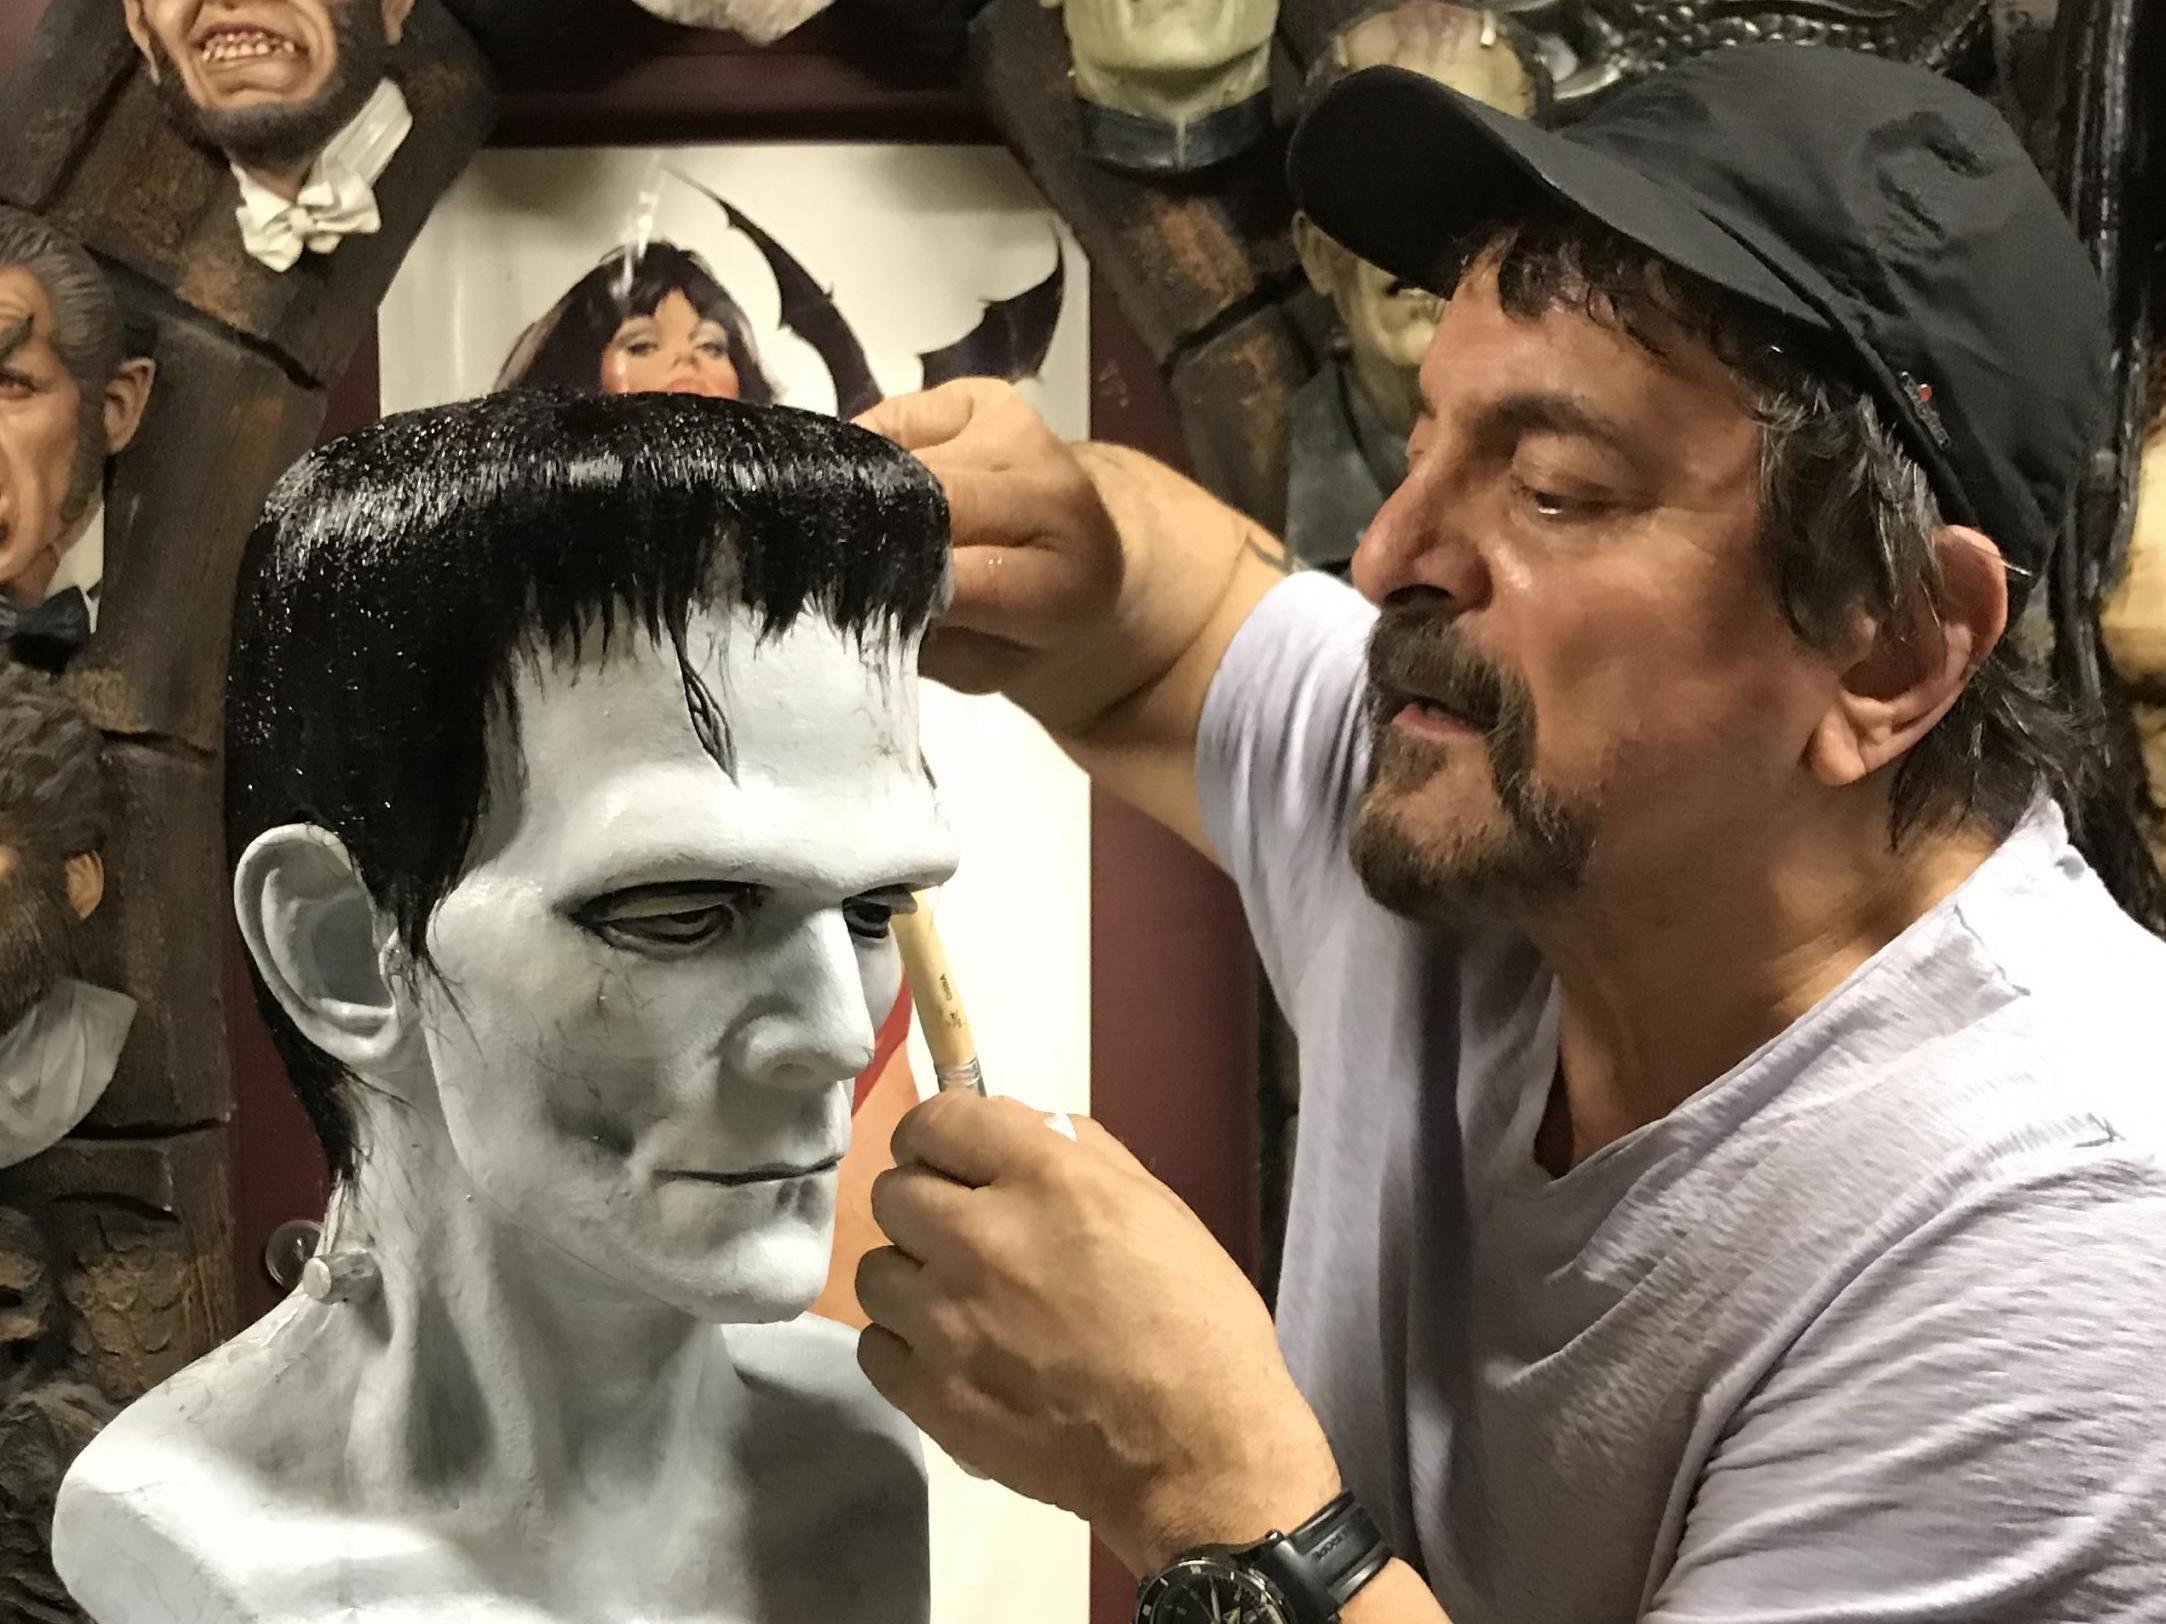 Tom Savini: 'My work looks so authentic because I've seen the real thing'